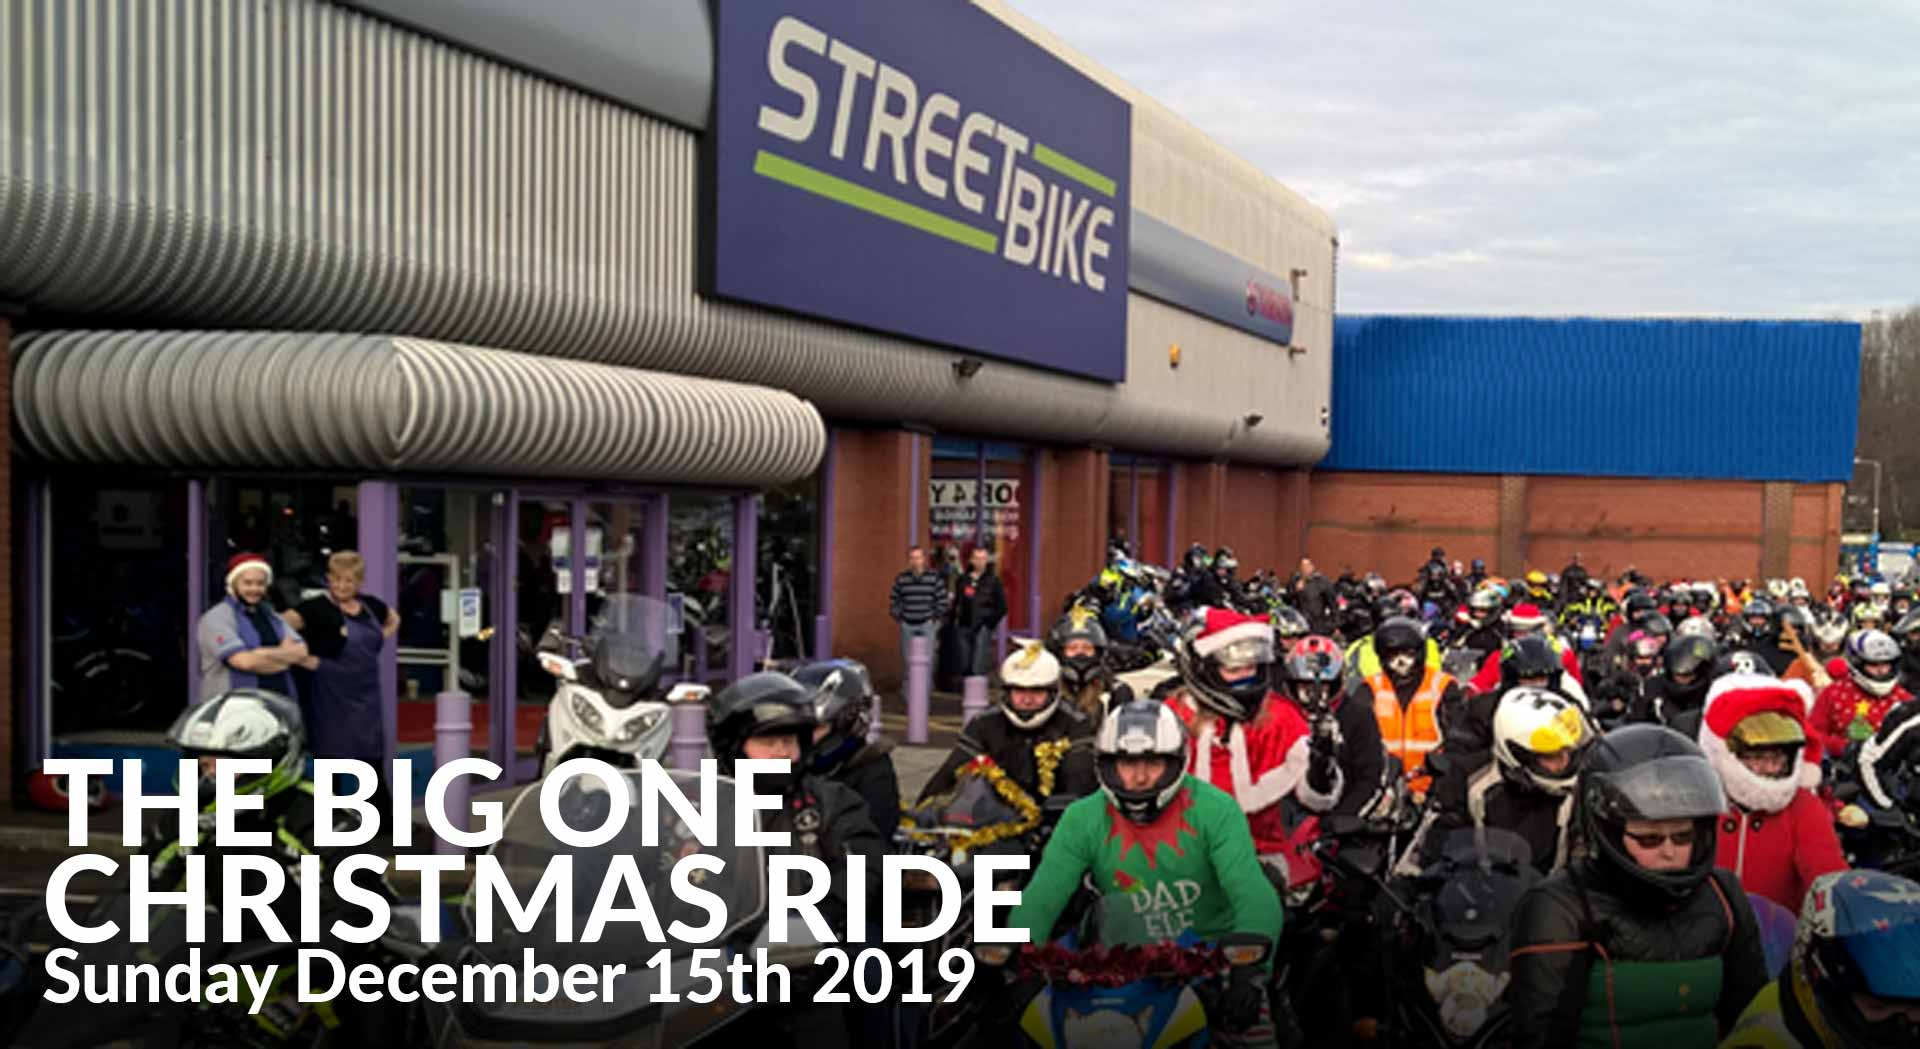 The Big One Christmas Ride Sunday 15th December 2019